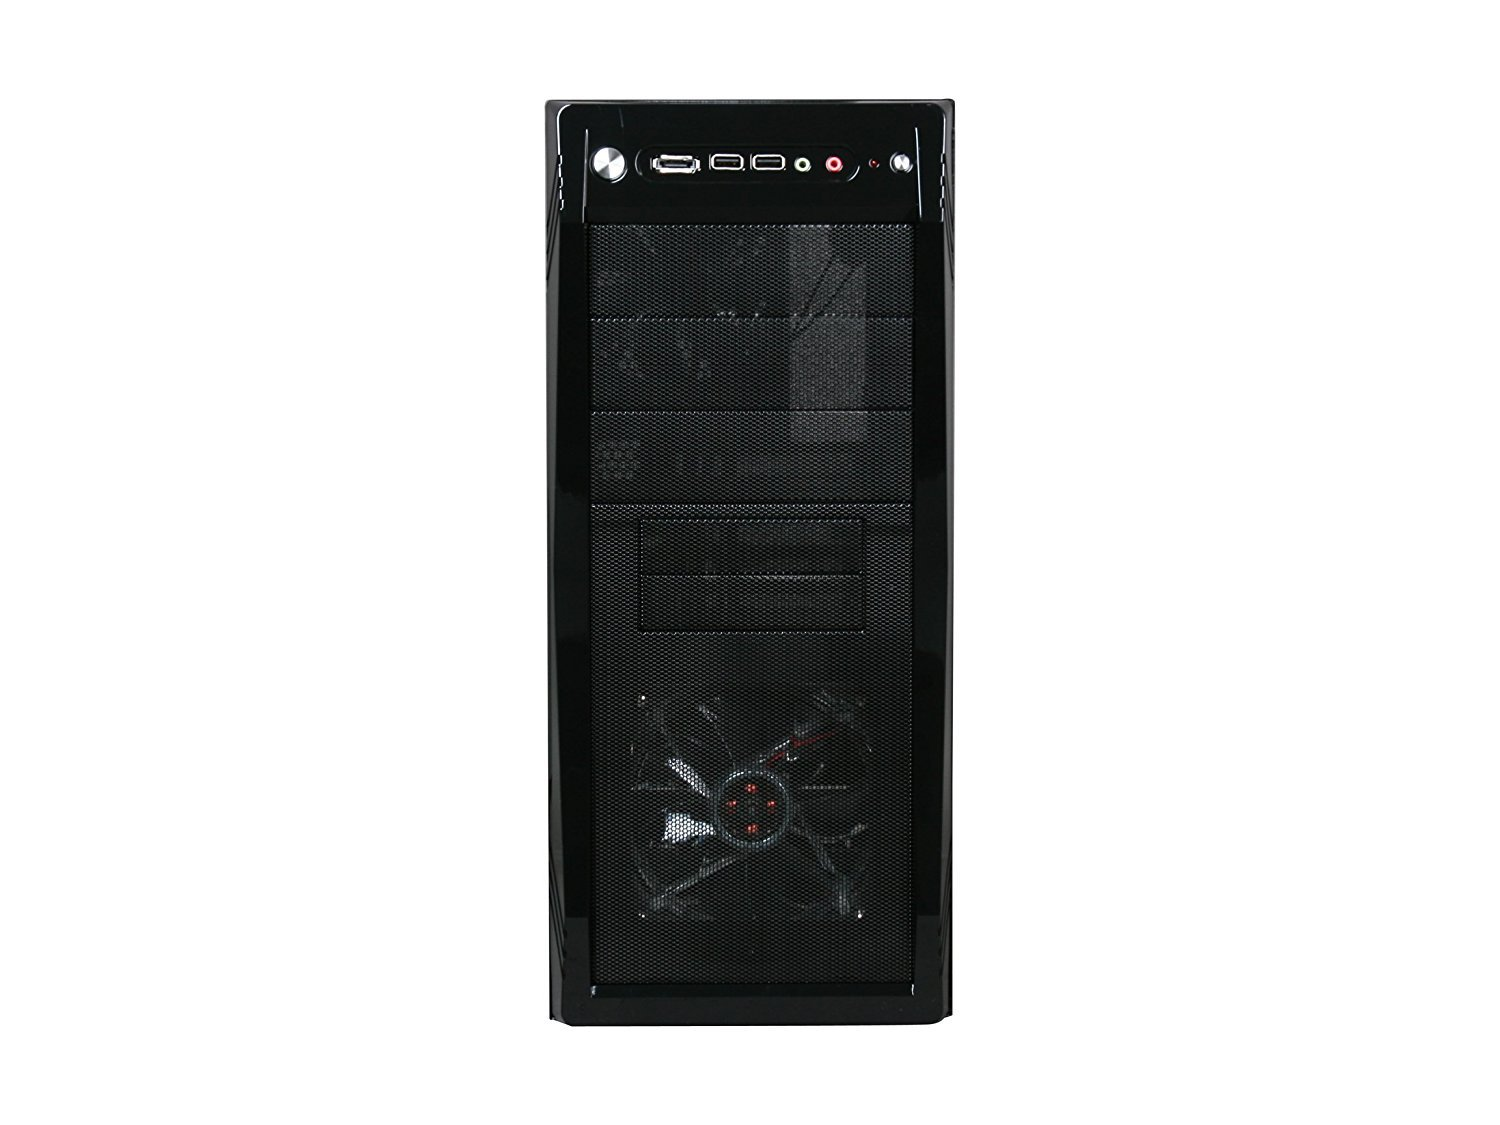 ROSEWILL ATX Mid Tower Gaming Computer Case, Gaming Case with Blue LED for Desktop / PC and 3 Case Fans Pre-Installed, Front I/O Access Ports  (CHALLENGER) by Rosewill (Image #2)